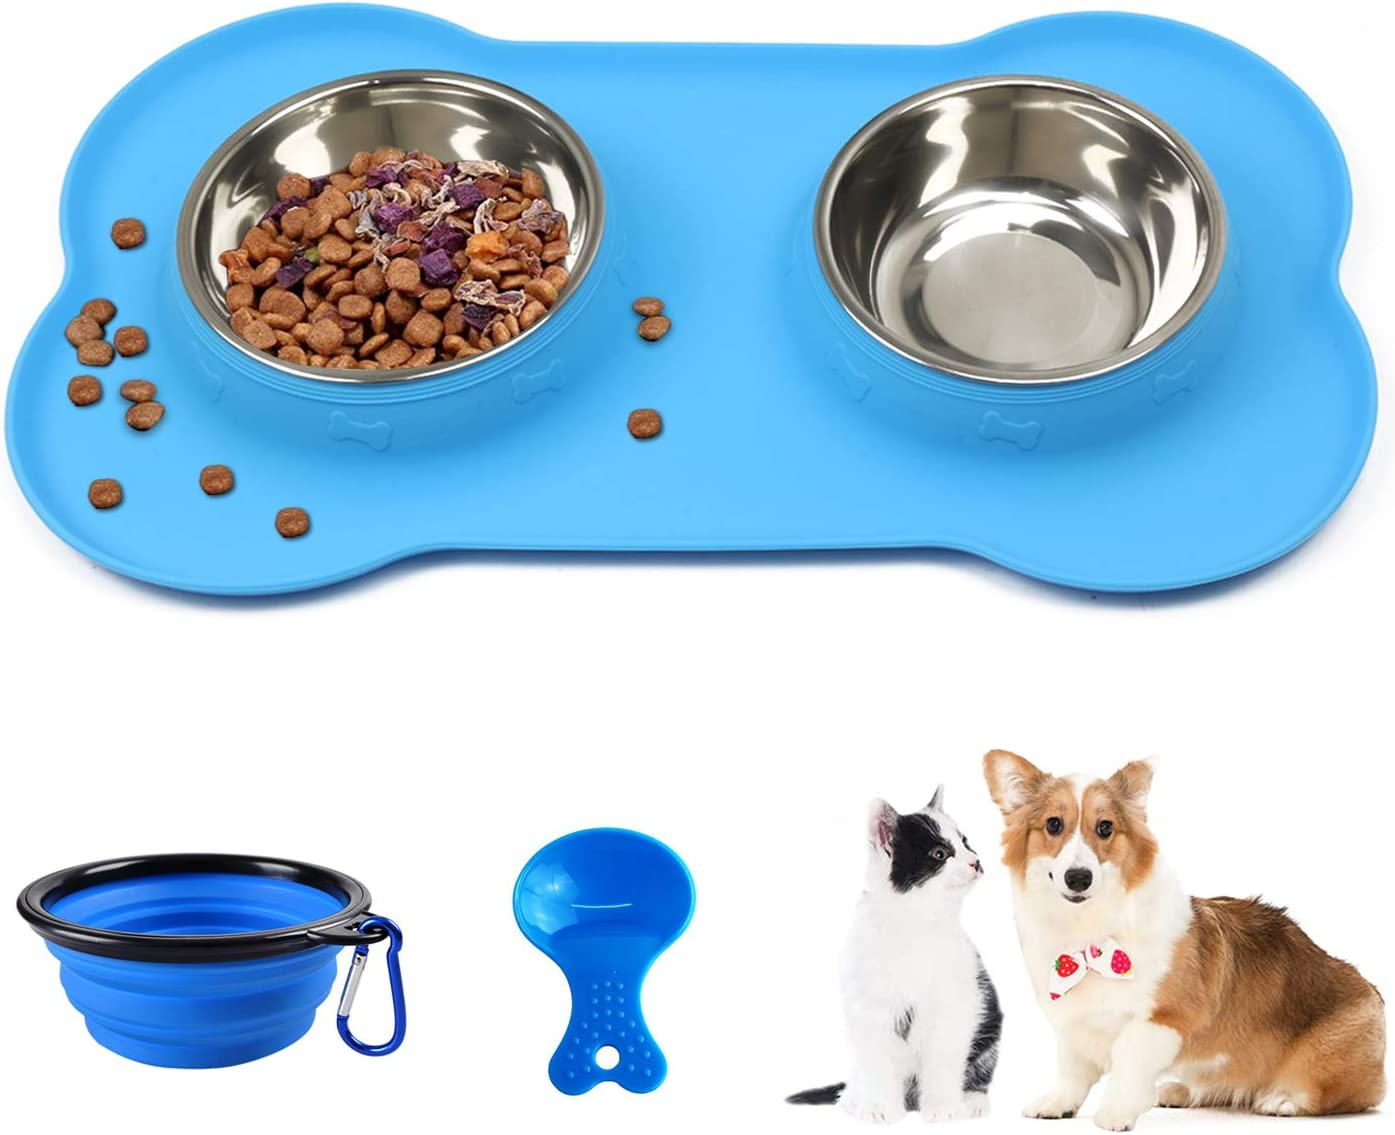 Linifar Double Dog Bowl, 14 oz Stainless Steel Dog Food and Water Bowl Food Scoop Pet Feeder Dish with Non Spill Skied Silicone Mat for Puppy Cats Small Medium Dogs